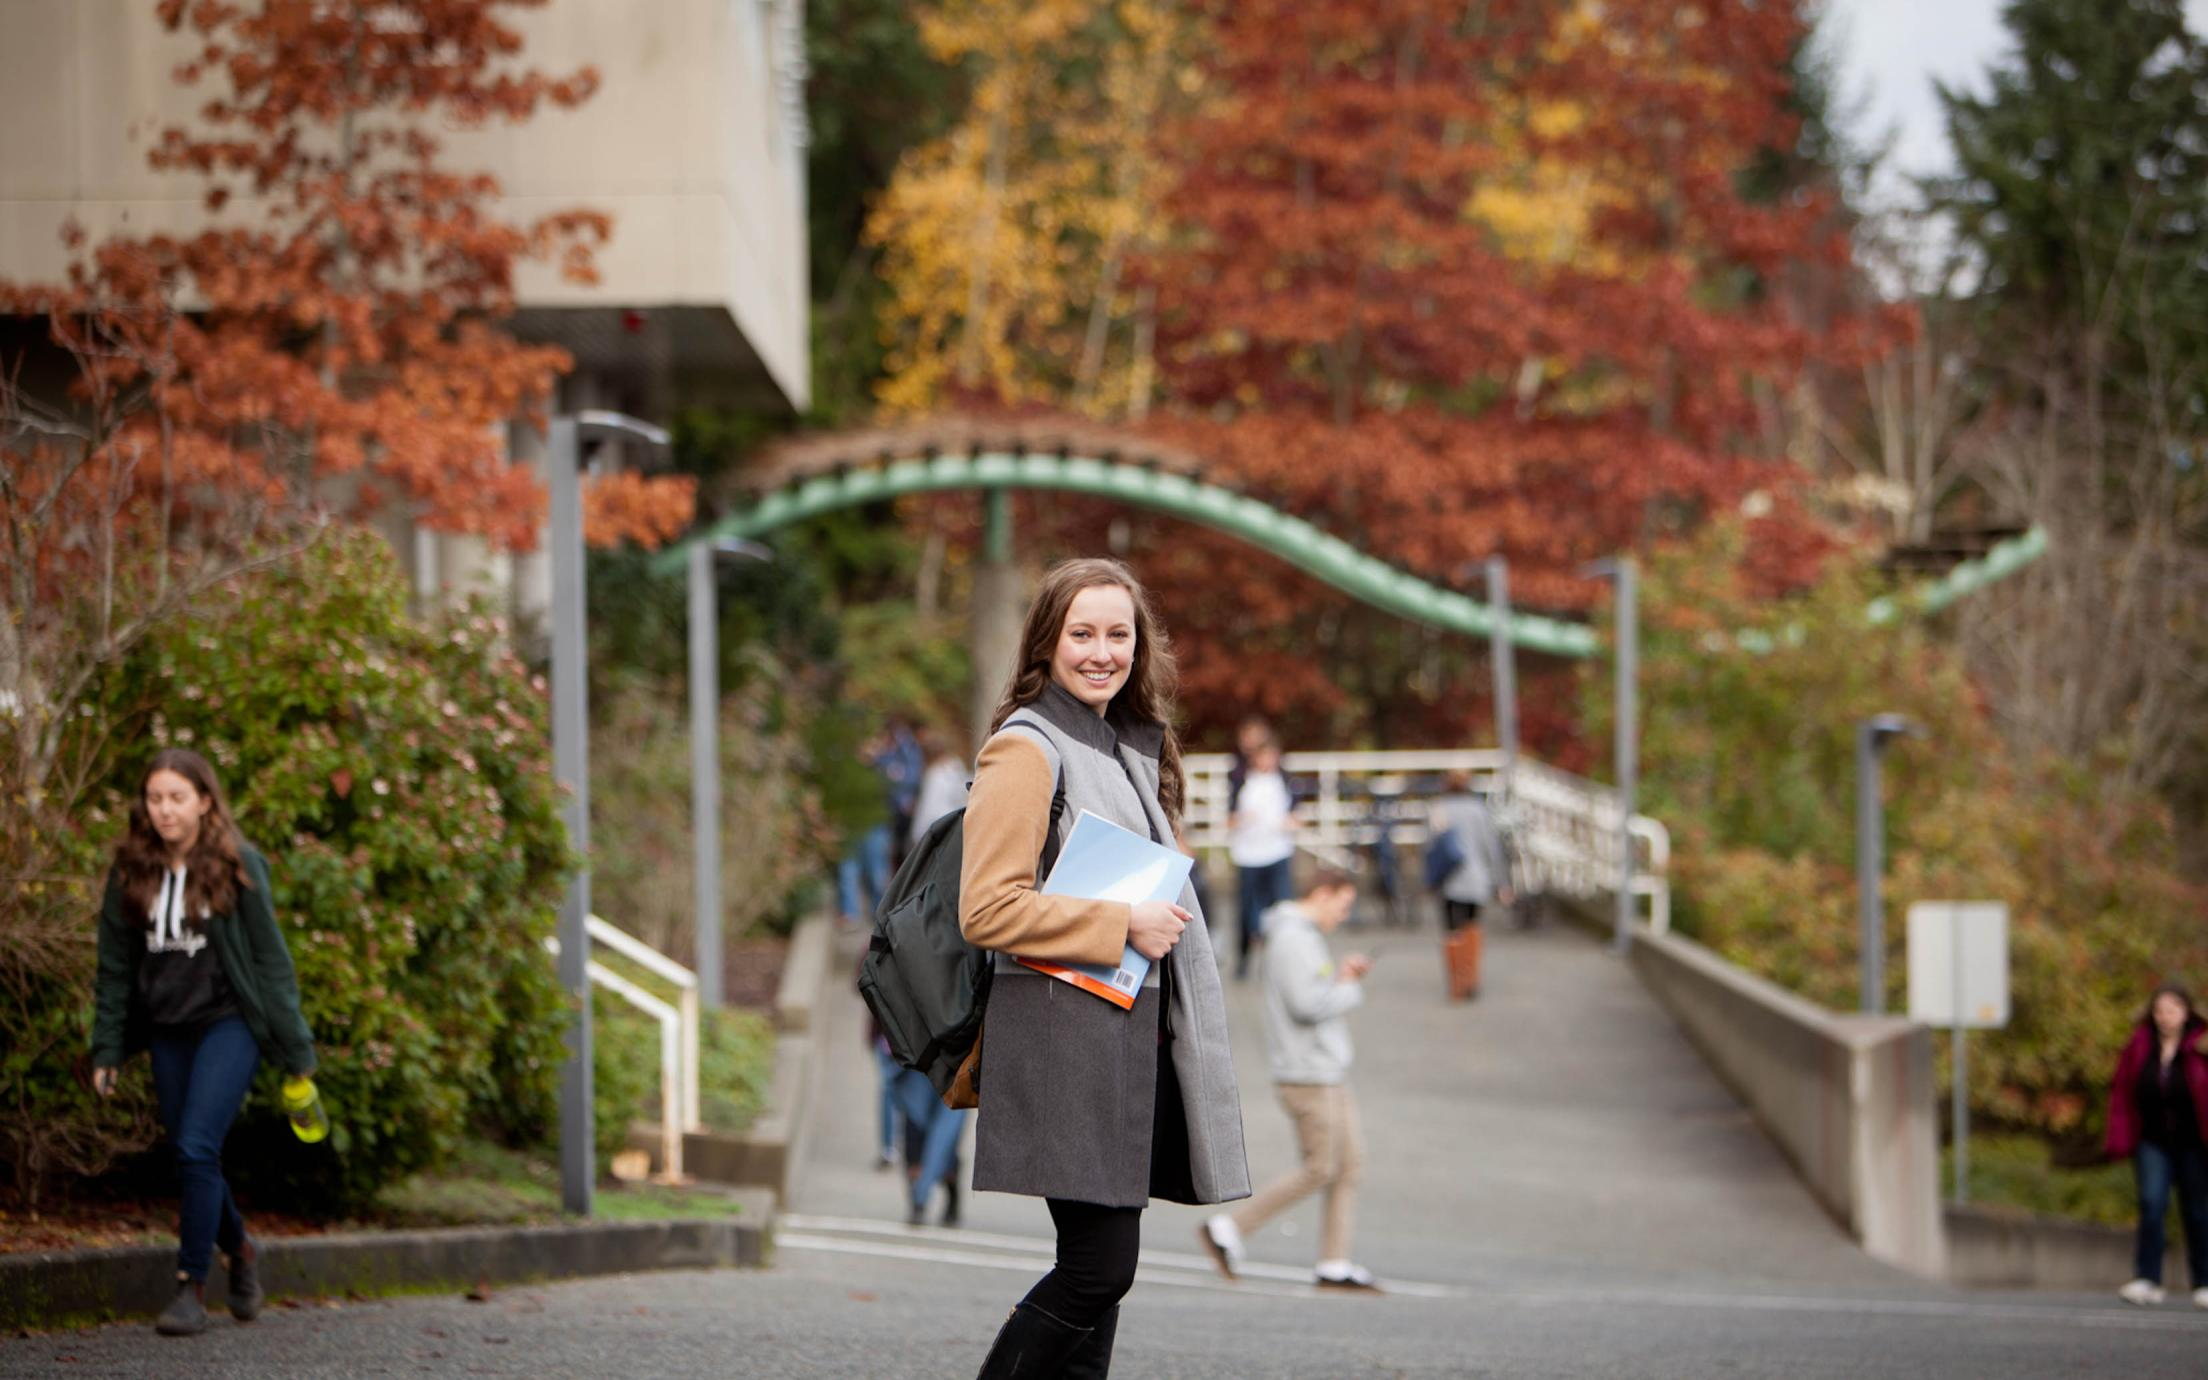 A female Social Services Program student on her way to class